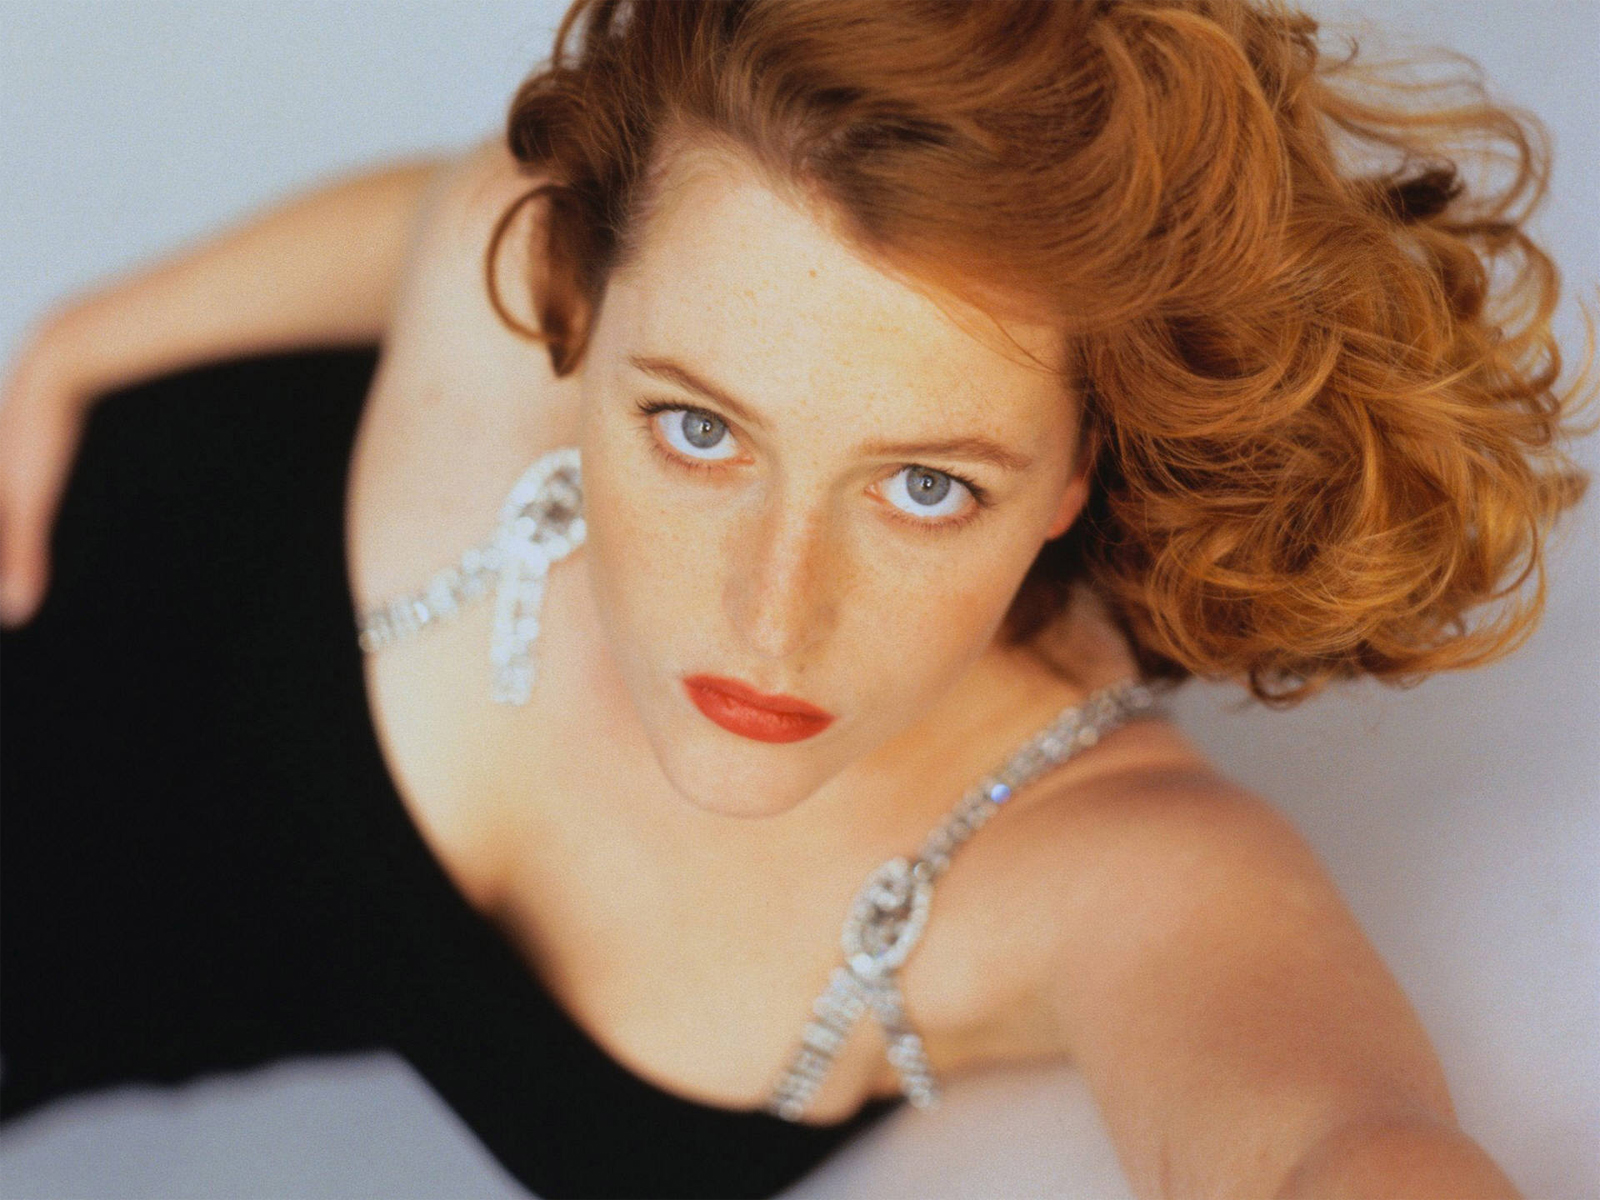 1600x1200 - Gillian Anderson Wallpapers 3